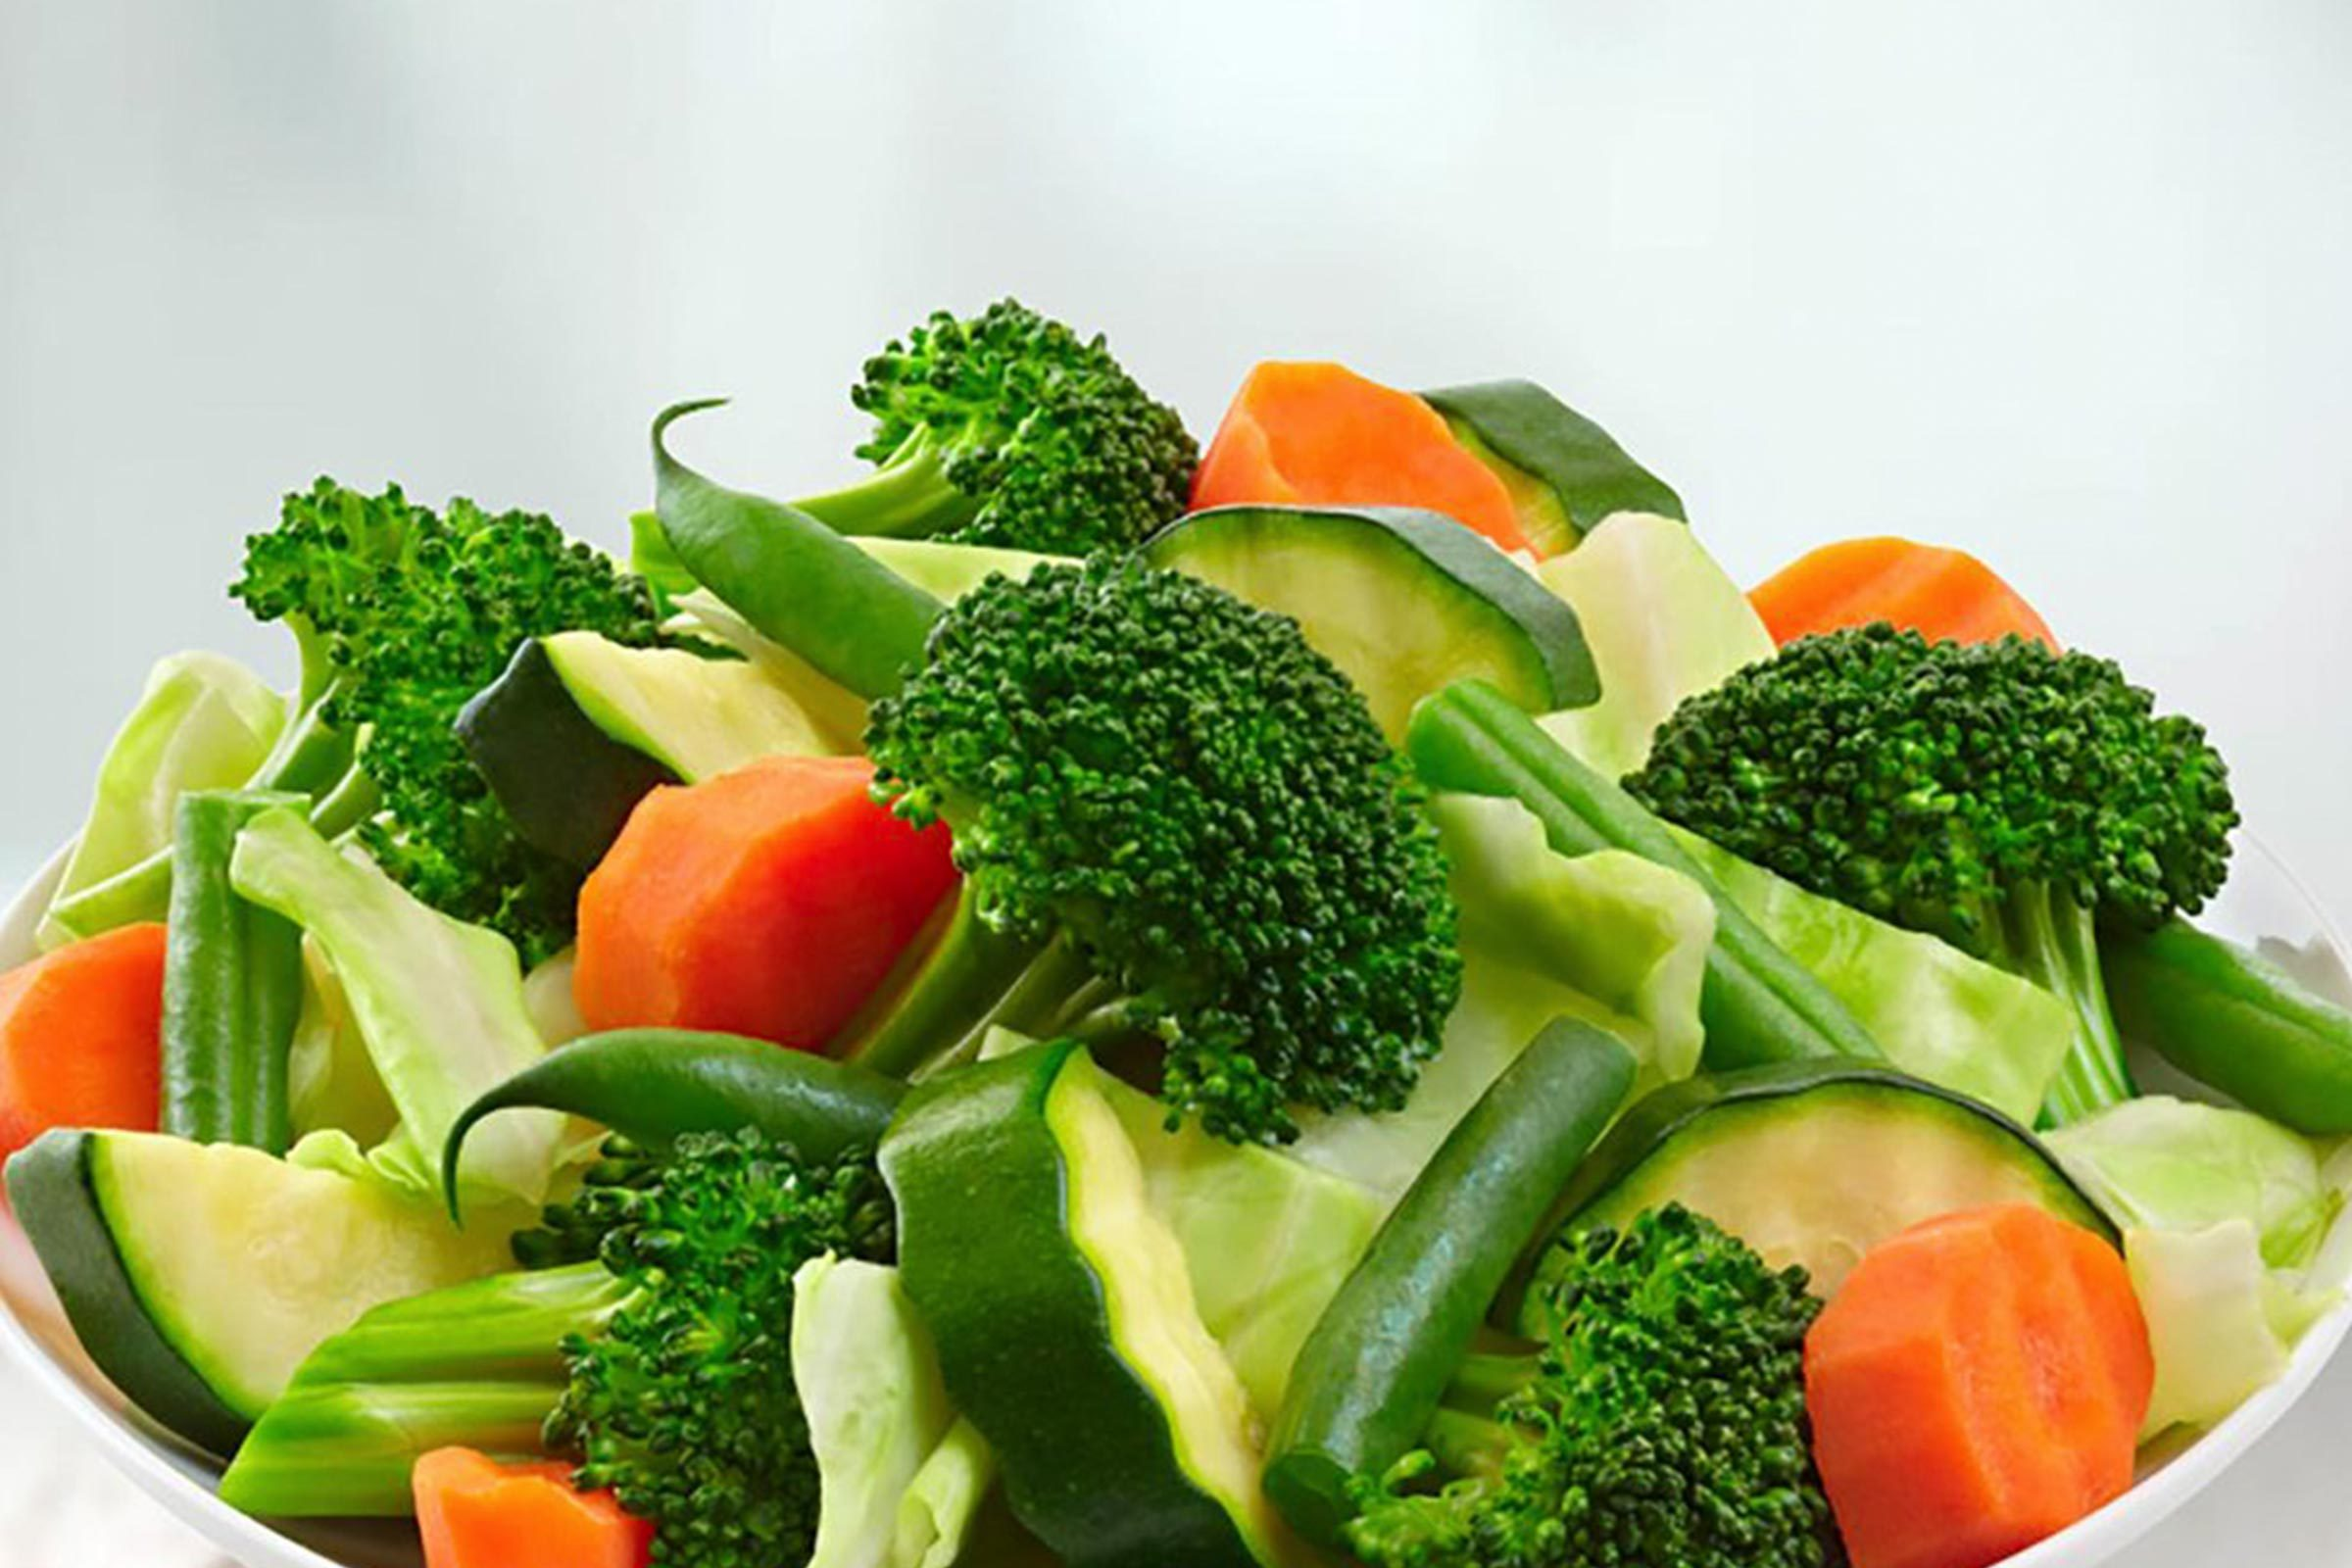 Healthy Chinese Food Healthiest Options To Order The Healthy